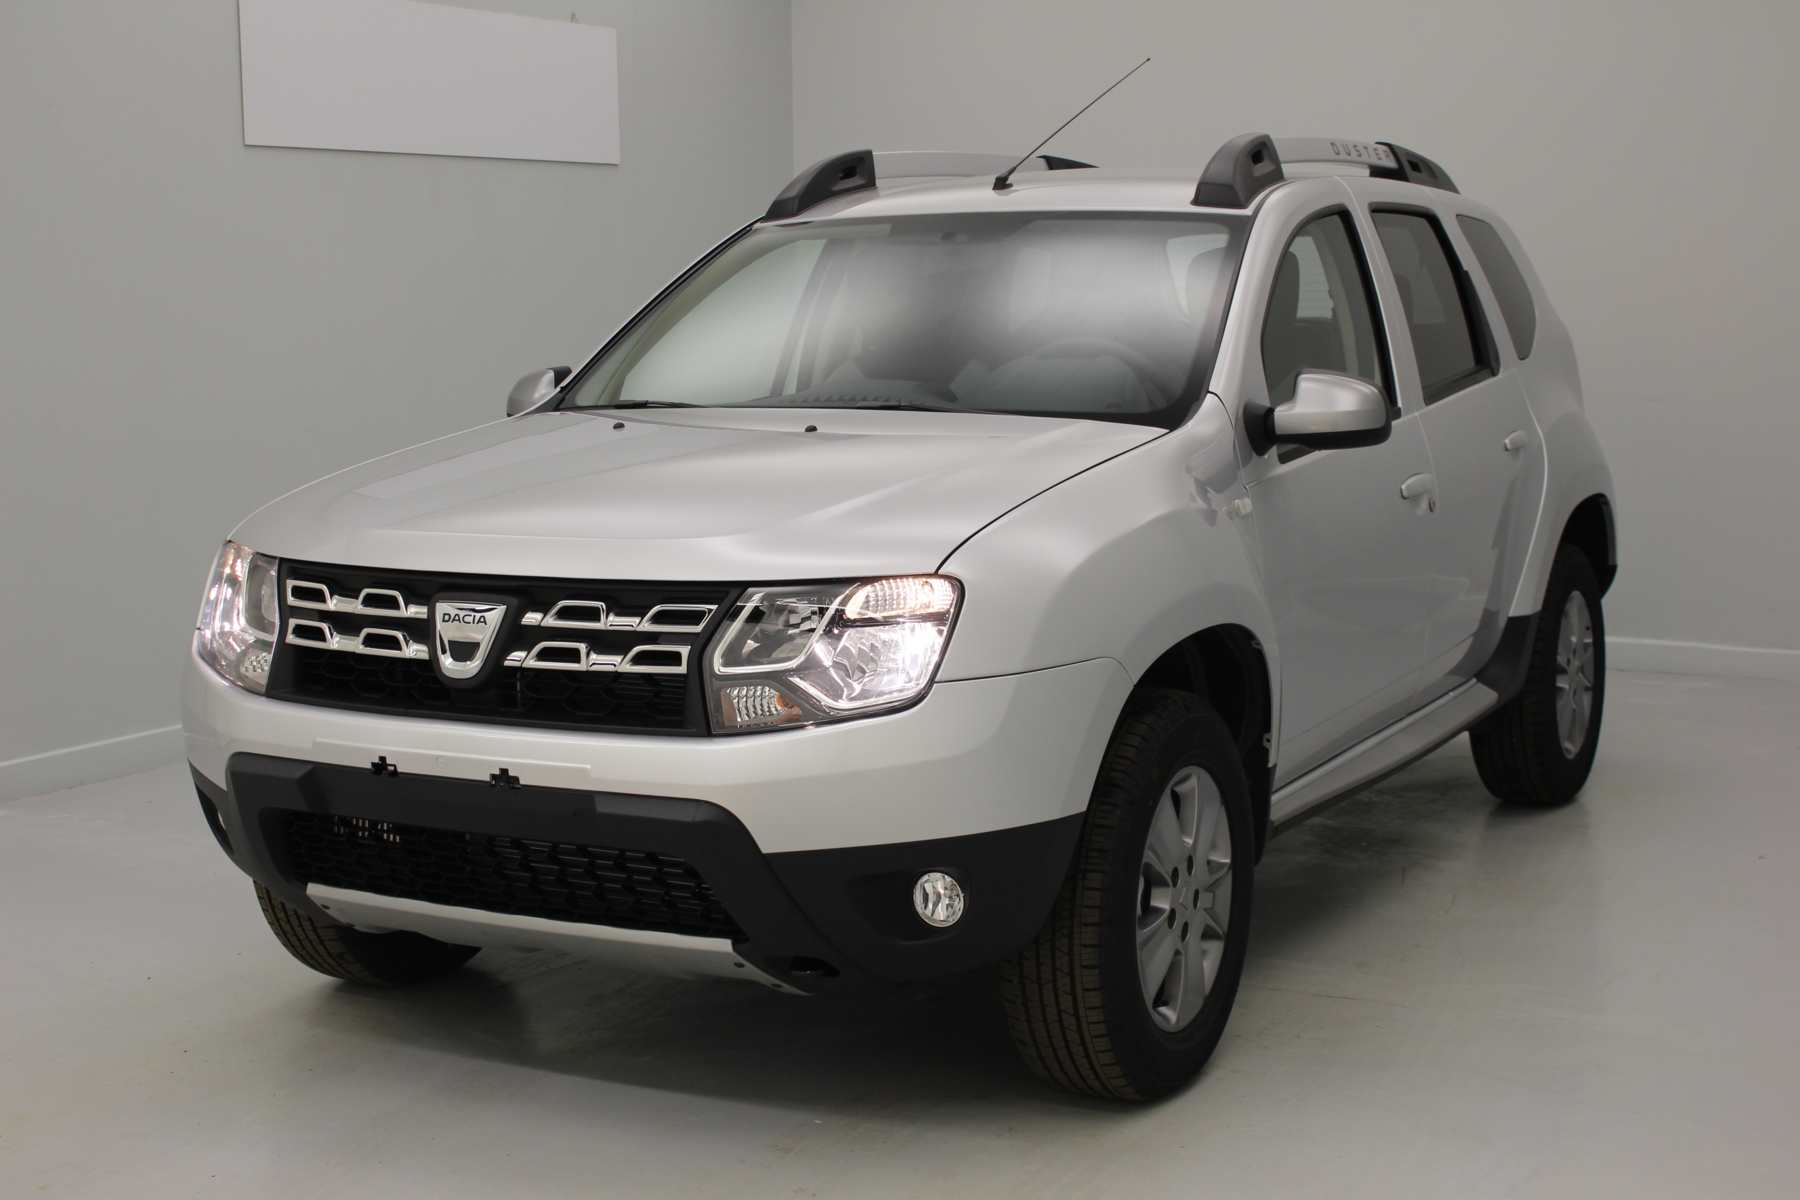 DACIA Duster dCi 110 4x4 Lauréate Plus 2017 Gris Platine + Media Nav Evolution  + Pack look extérieur avec options